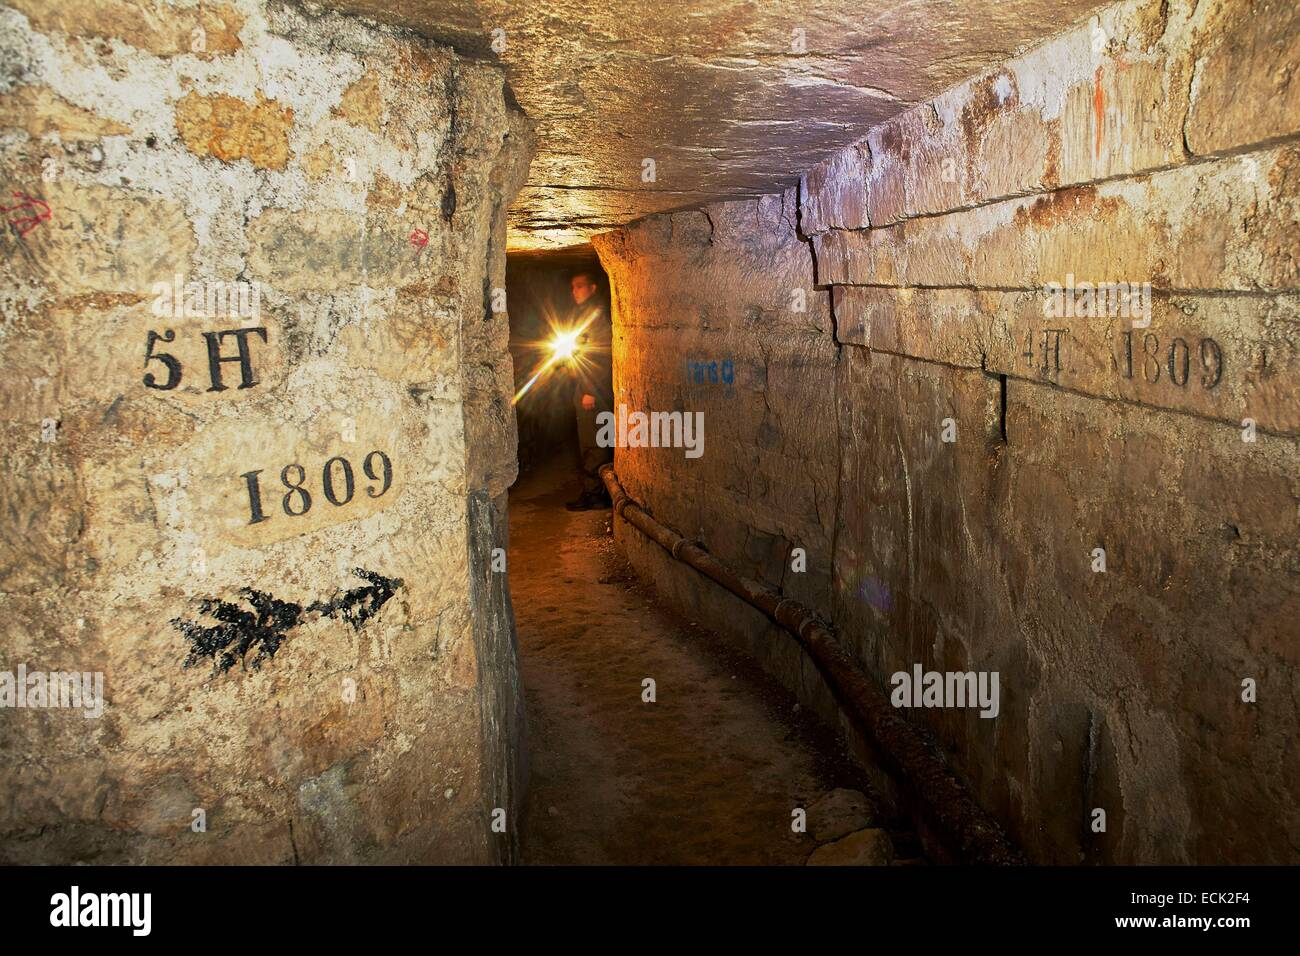 France, Paris, National Museum of Natural History, Catacombs - Stock Image